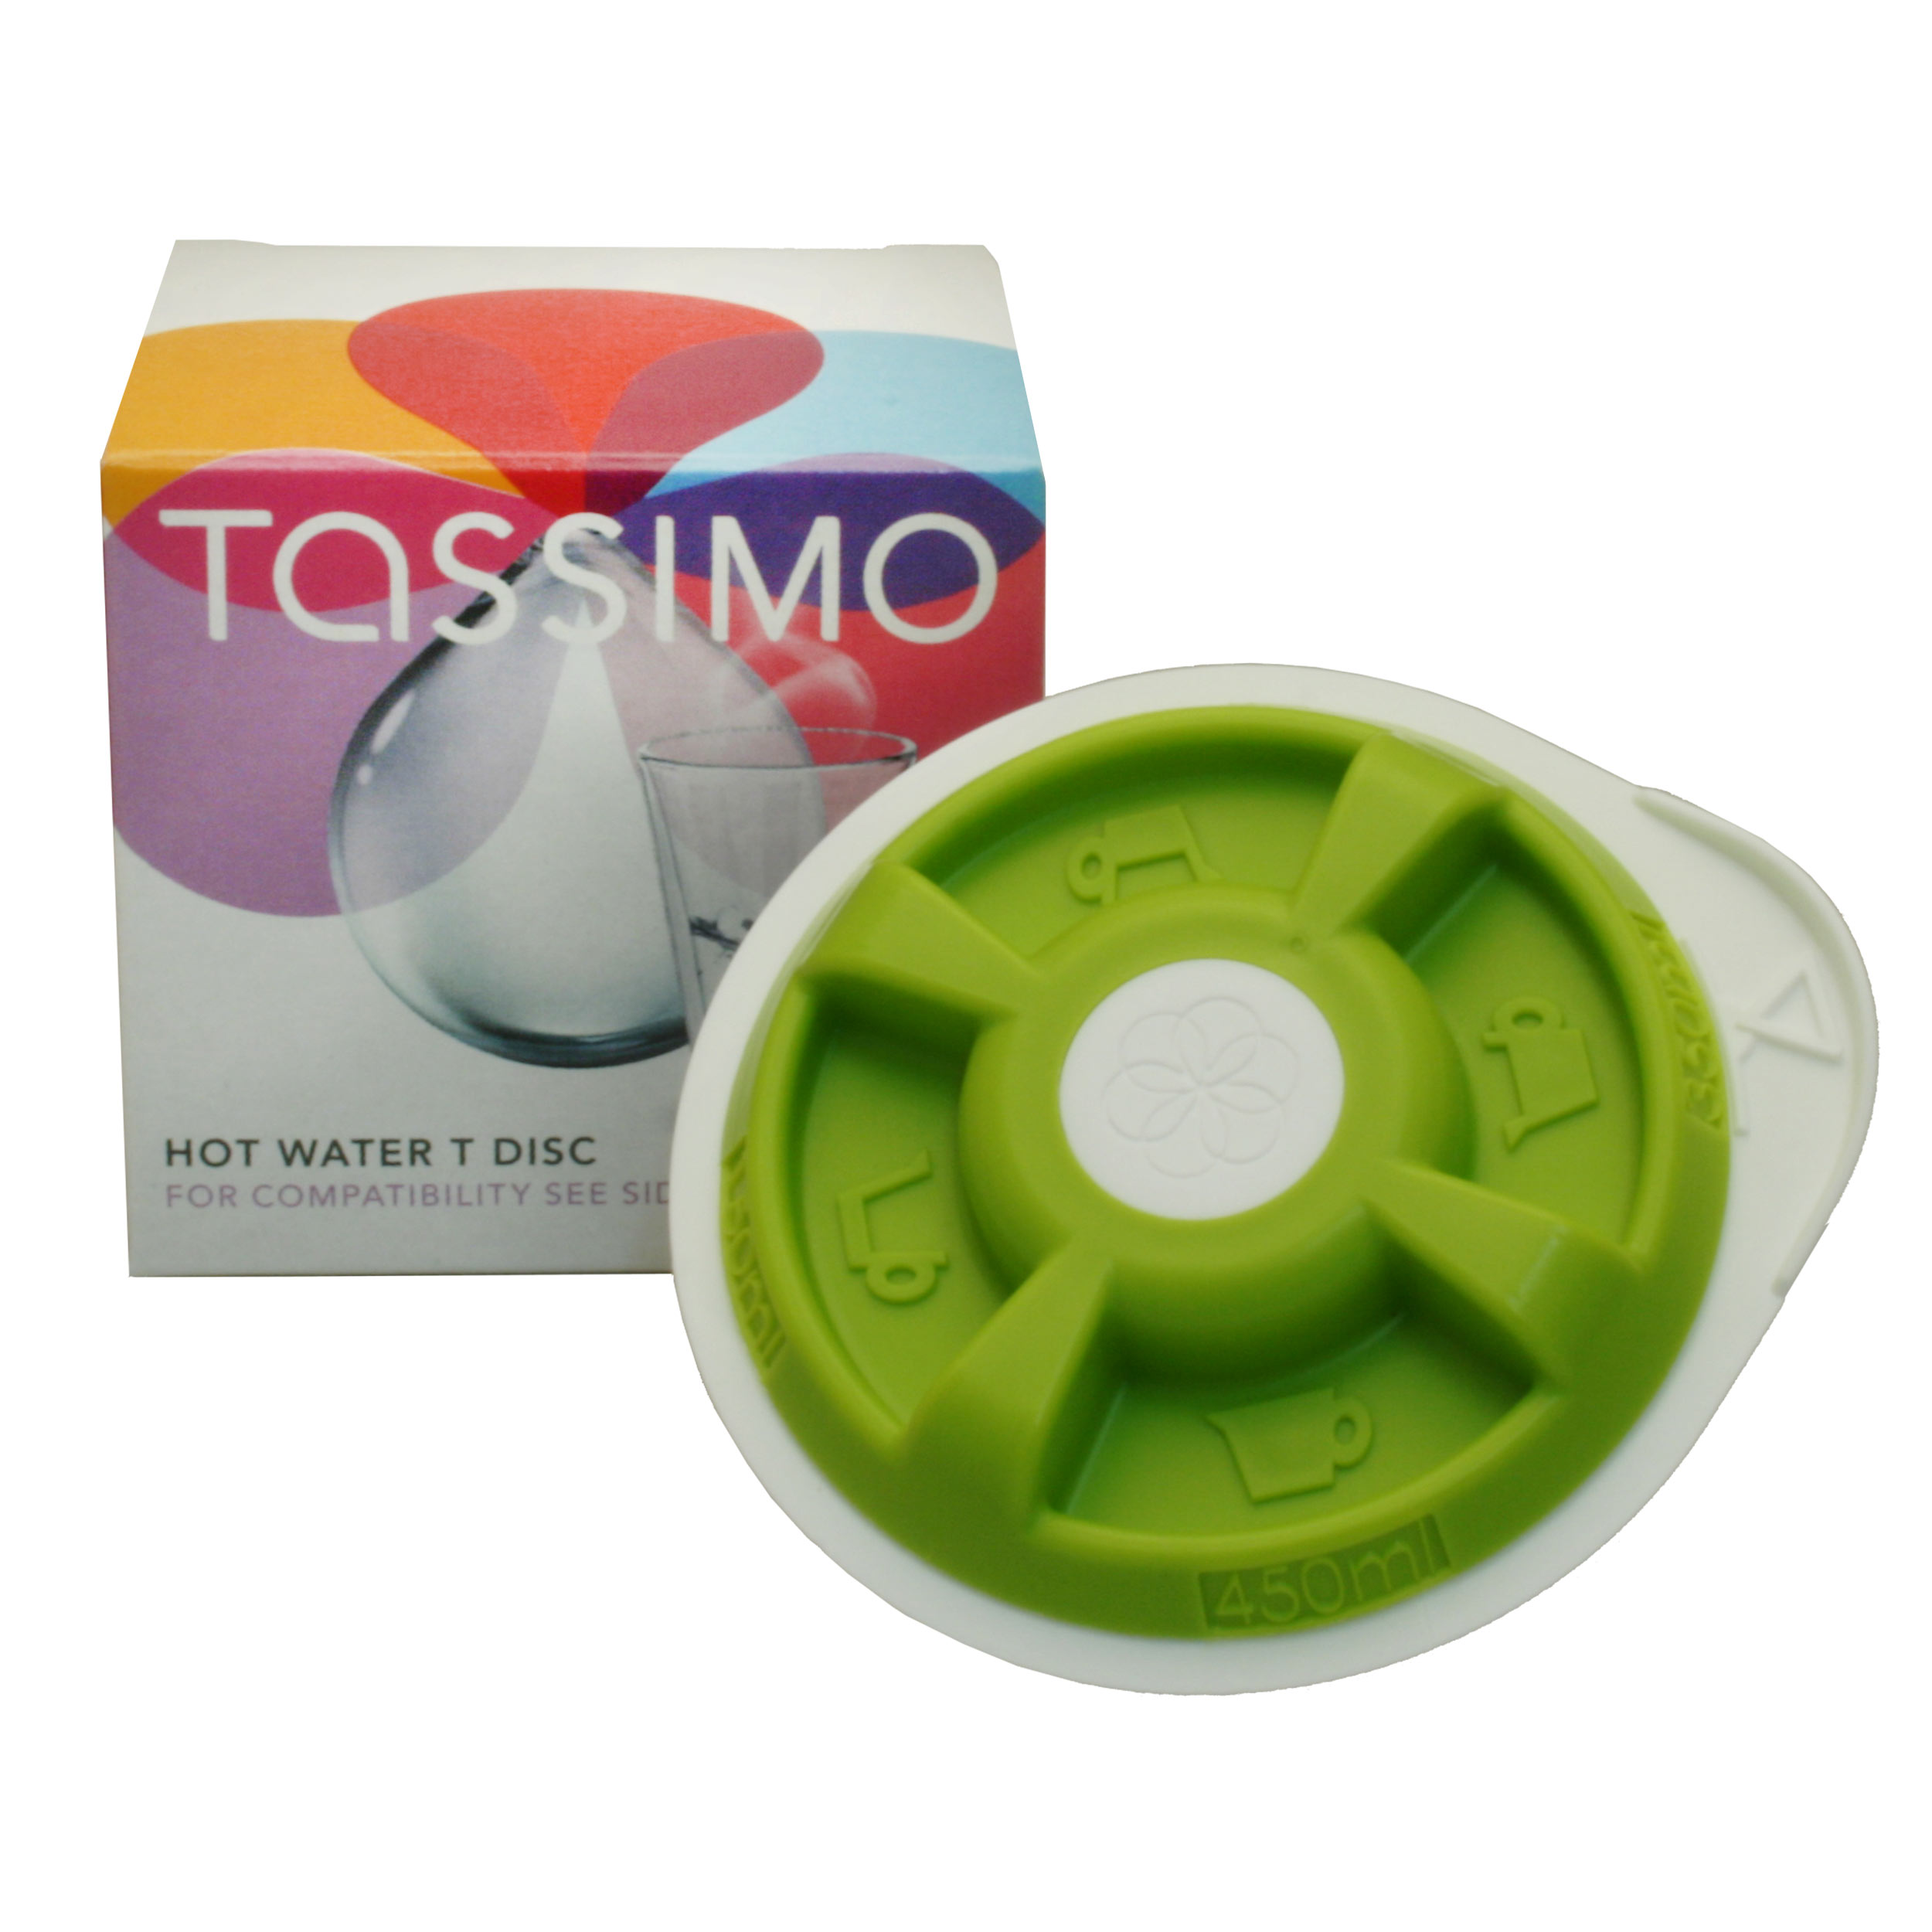 tassimo hot water t disc hot water preparer green for. Black Bedroom Furniture Sets. Home Design Ideas